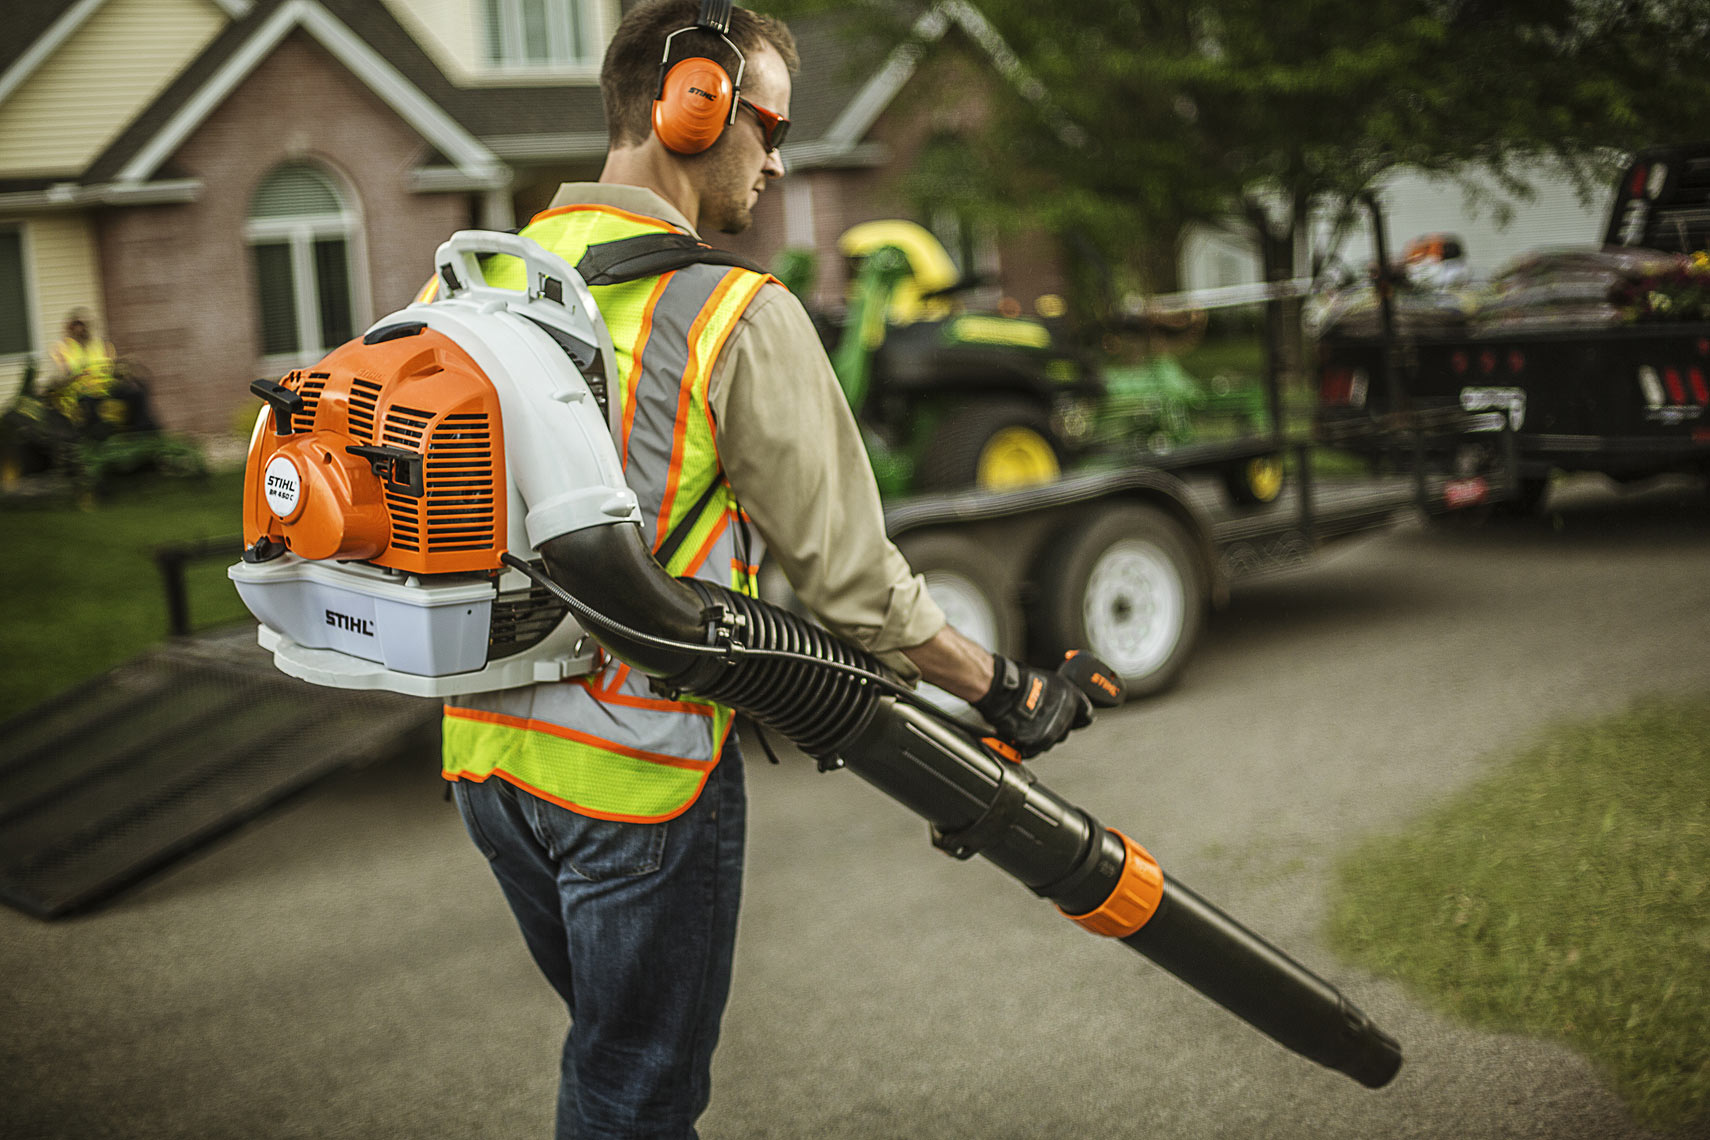 STIHL Bachpack Blower BR450 | John Fedele Product Photography